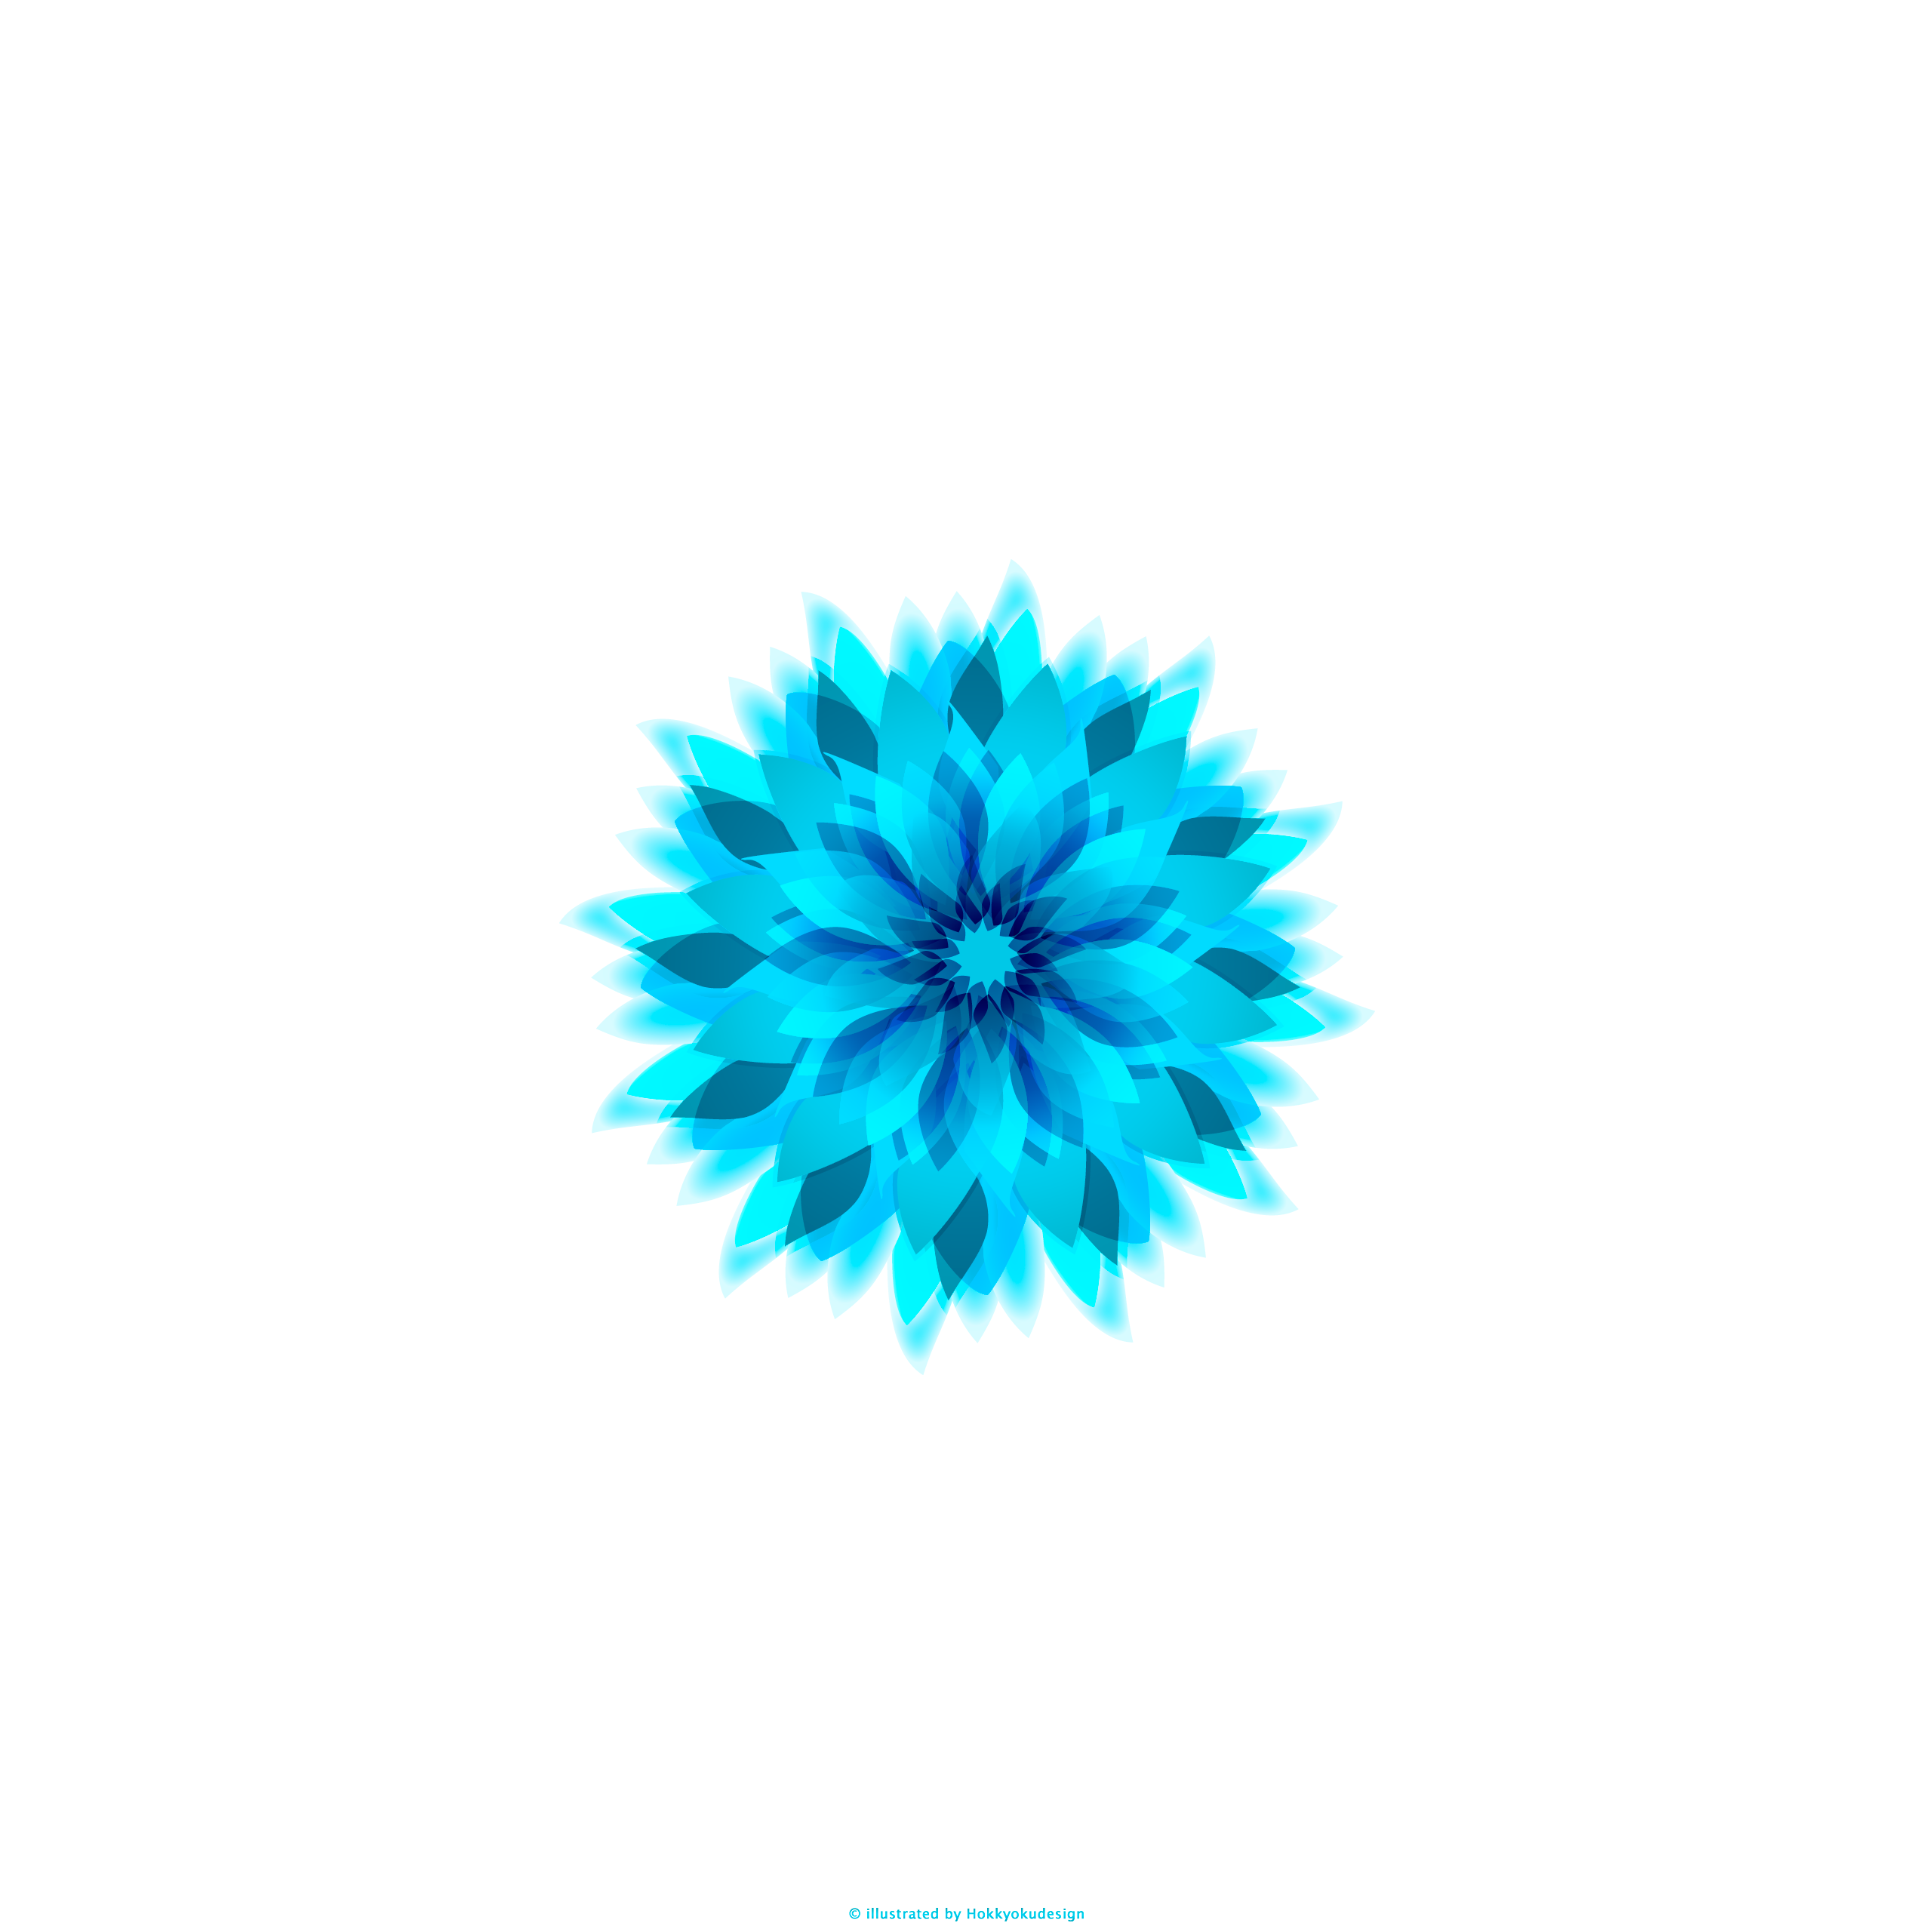 Ios壁紙 Iphone6 Plus Blue Flower With White Ios8 Iphone6 Flower